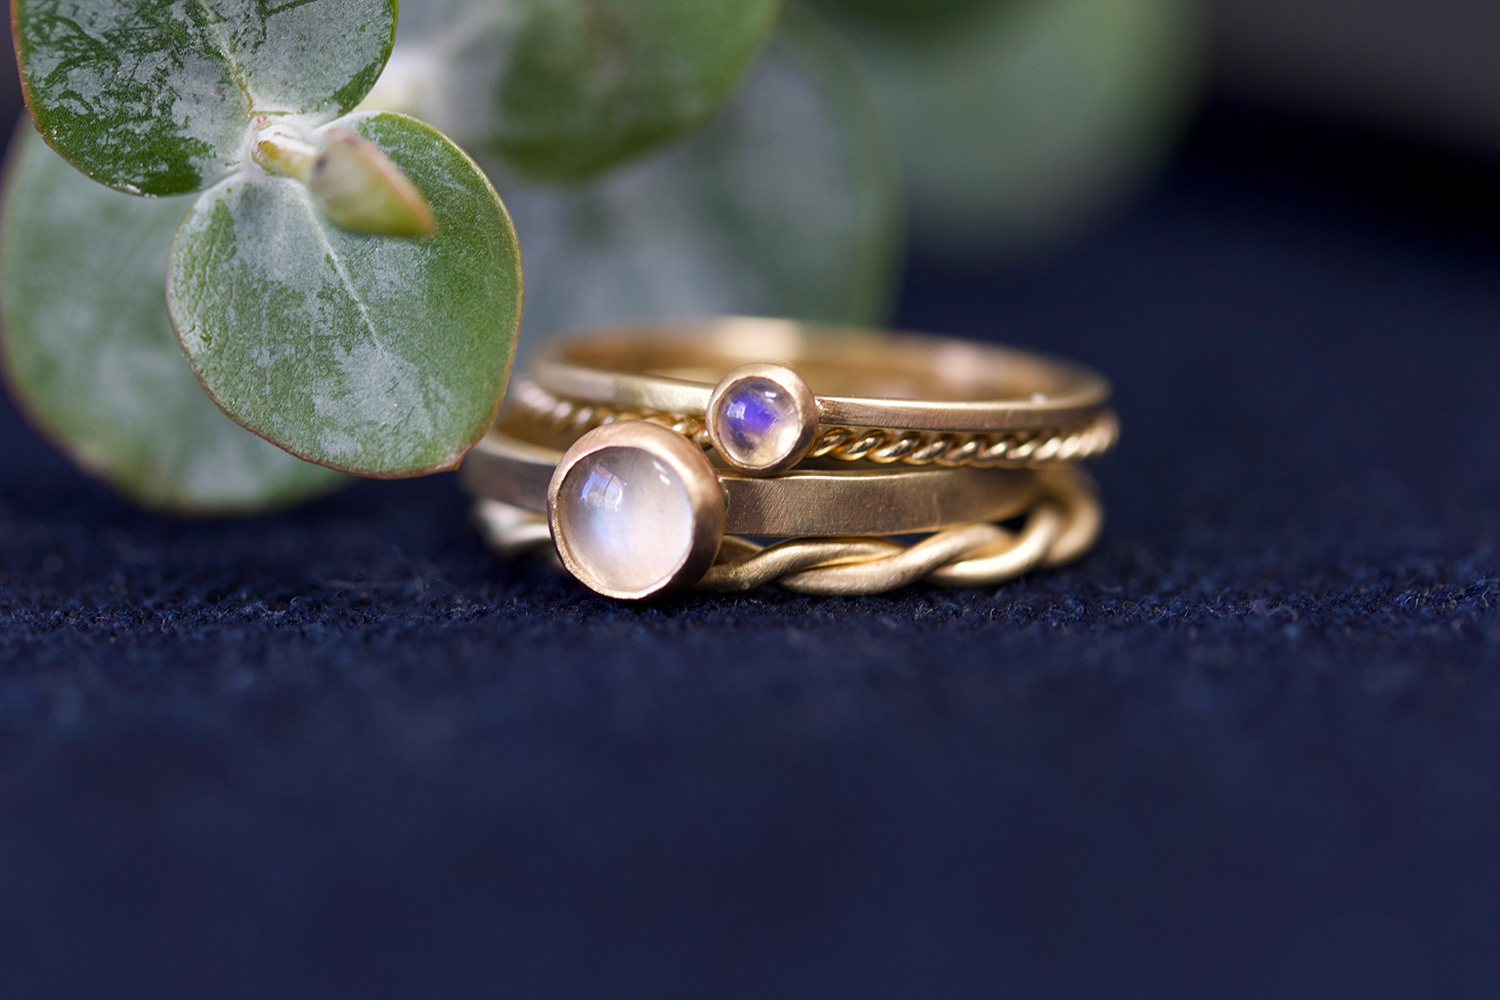 moonstone and rope rings.jpg